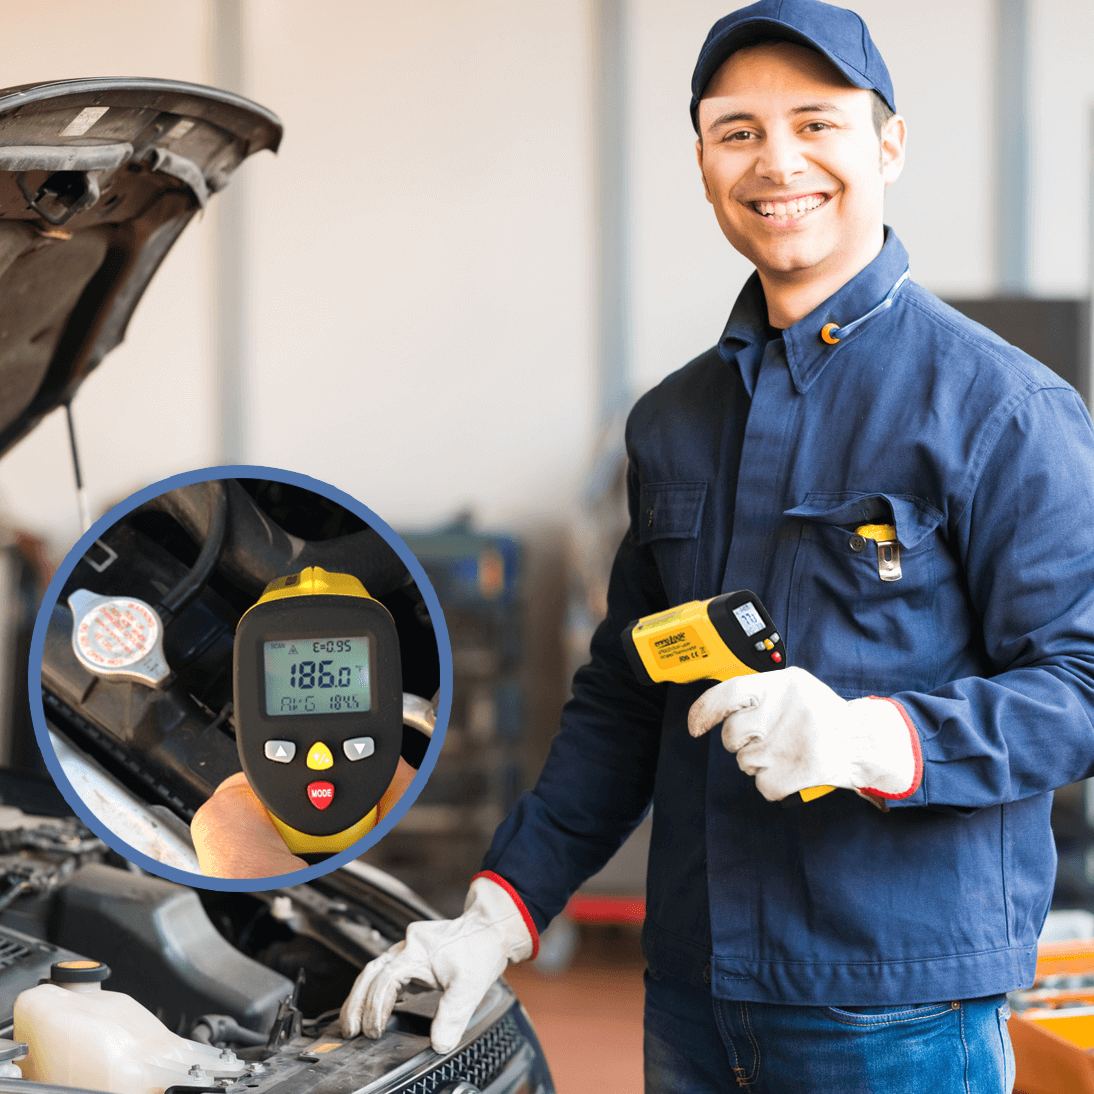 Infrared thermometer measres coolant in automotive diagnostics